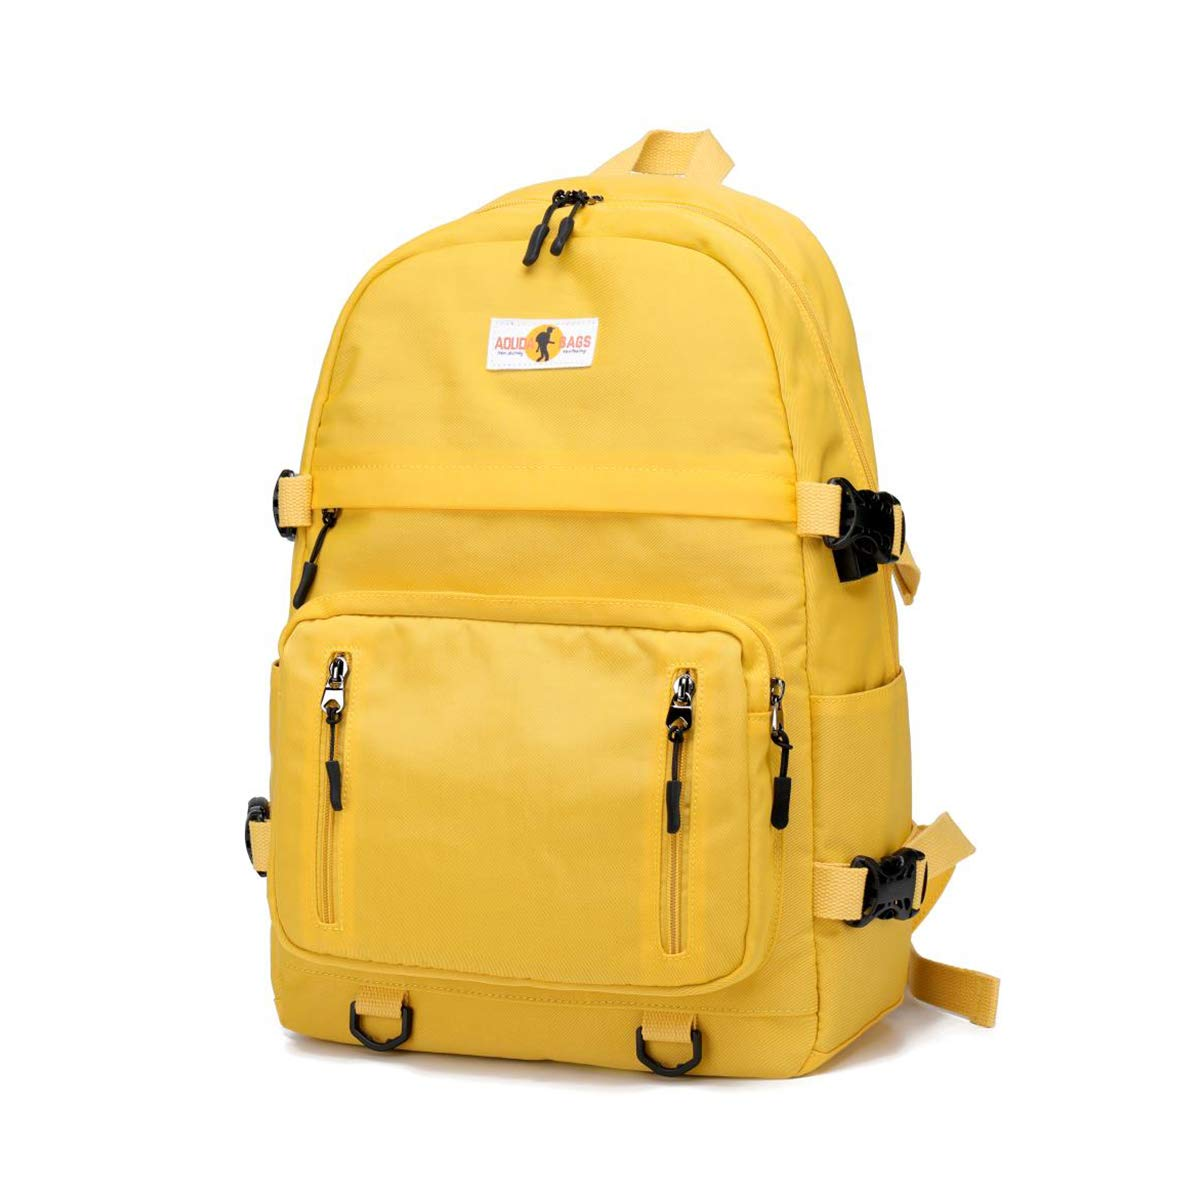 misognare Basic Backpack Unisex College Student Book Bag Travel Daypack for 14 inch Laptop (Yellow) by misognare